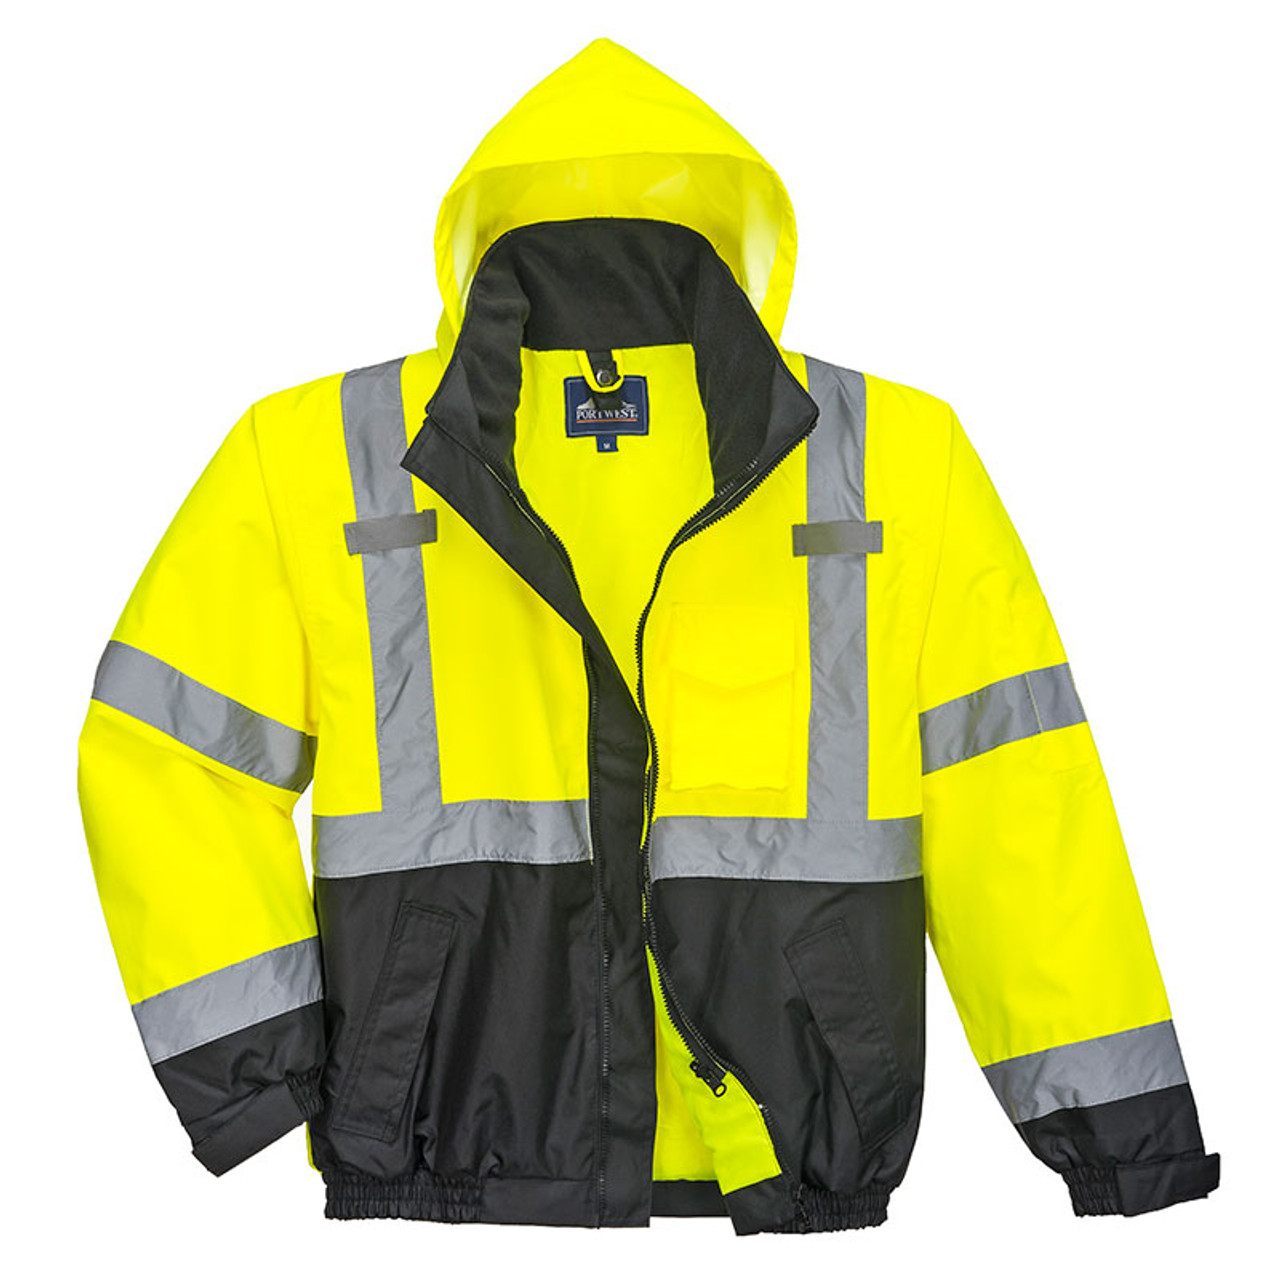 d8badb55b PortWest Class 3 High Visibility 3-in-1 Bomber Jacket US365